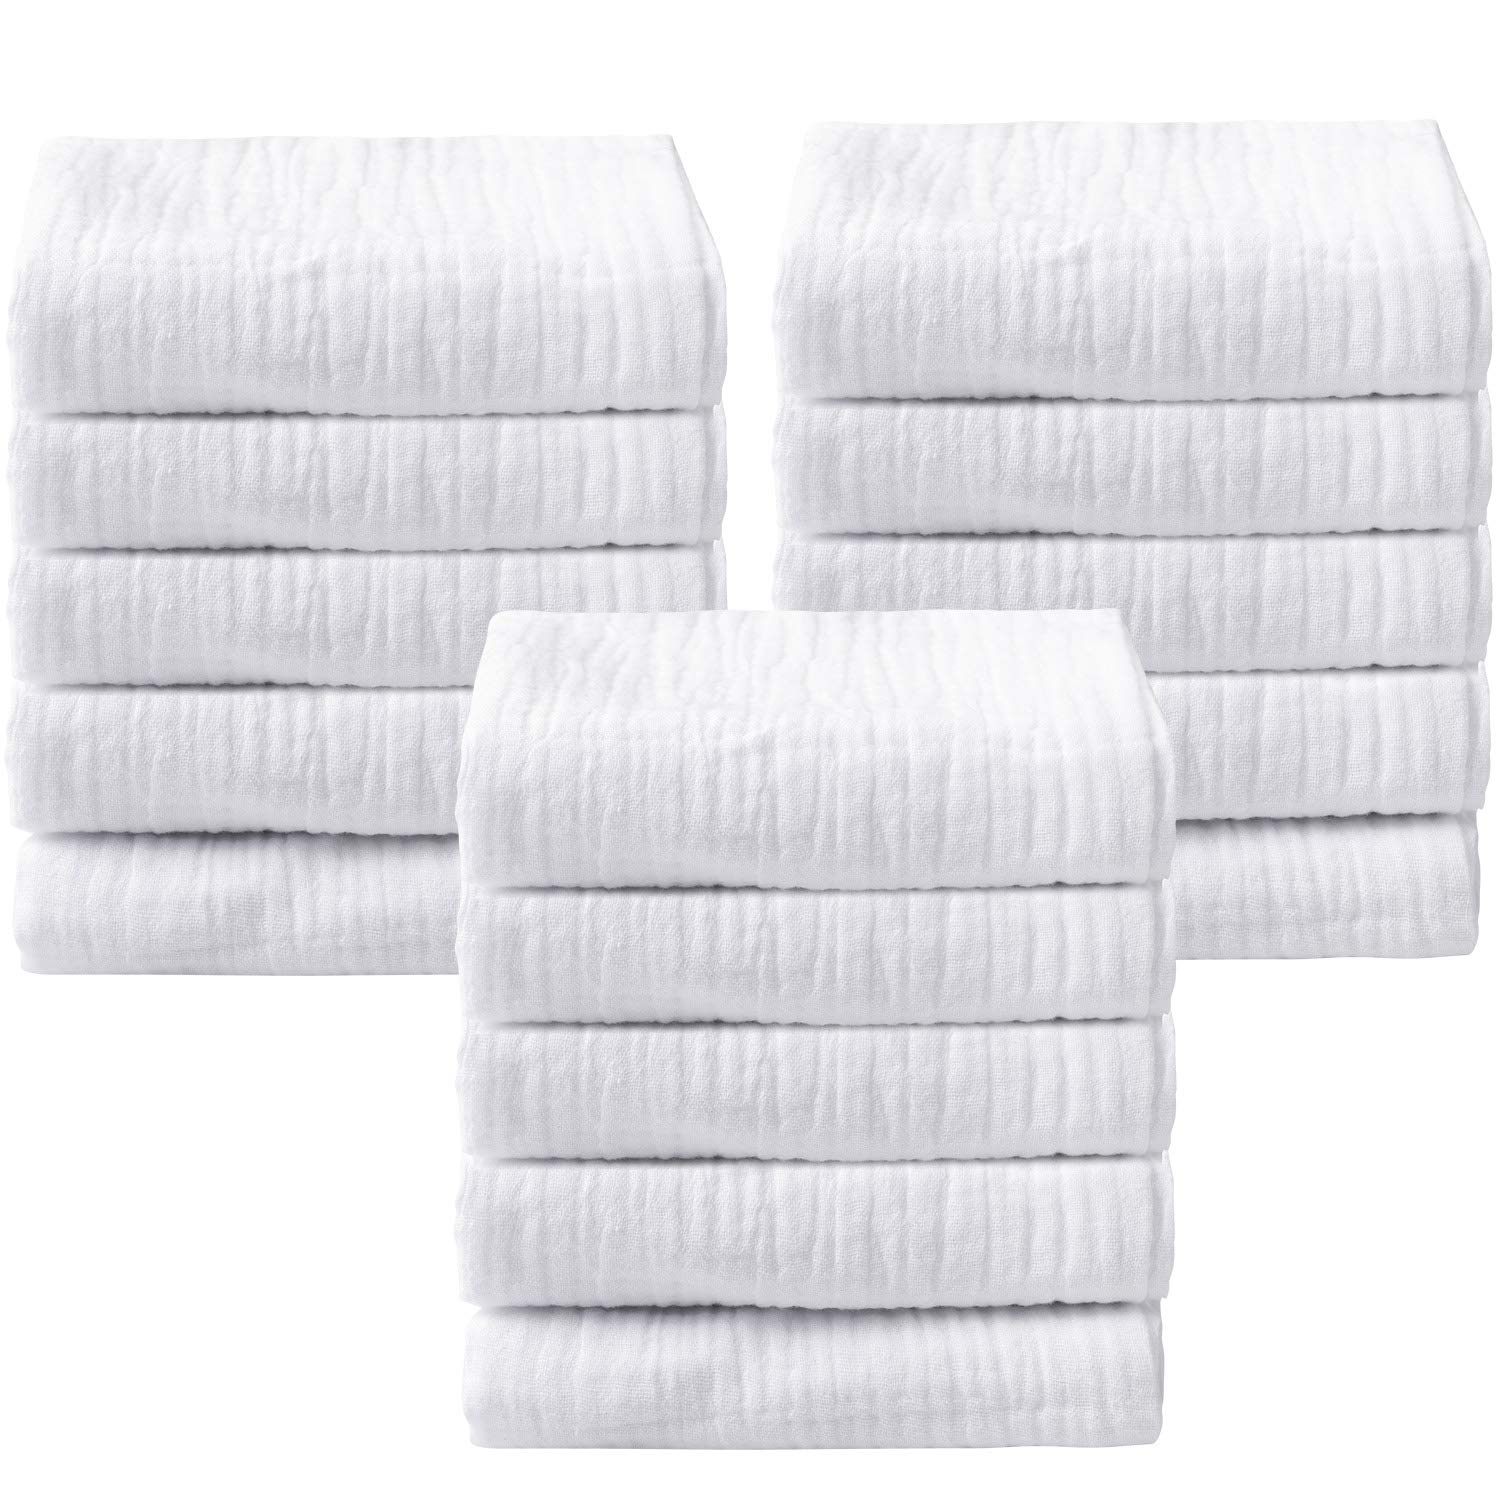 15 Pieces Baby Washcloths White Baby Face Towels Baby Muslin Washcloths Soft Newborn Baby Face Towels for Sensitive Skin